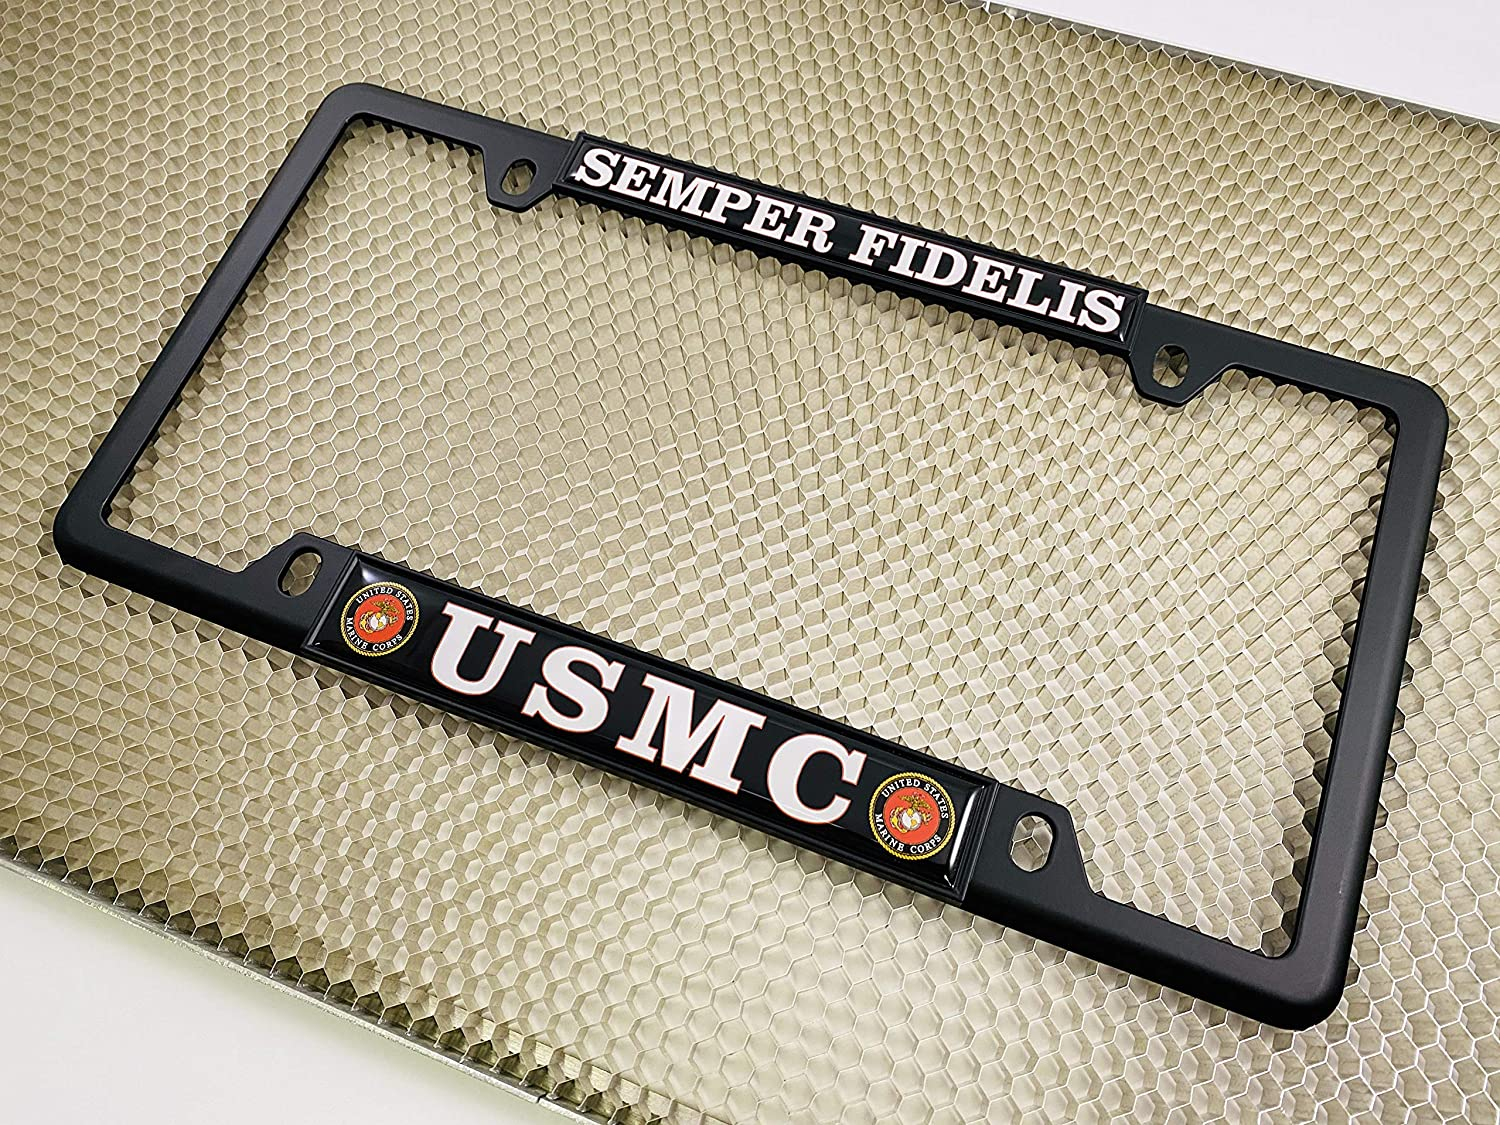 USMC Semper Fidelis Chrome Thin Top 4 Hole Metal Car License Plate Frame with Free caps Black /& White Text - Domed Custom-Made Personalized Narrow